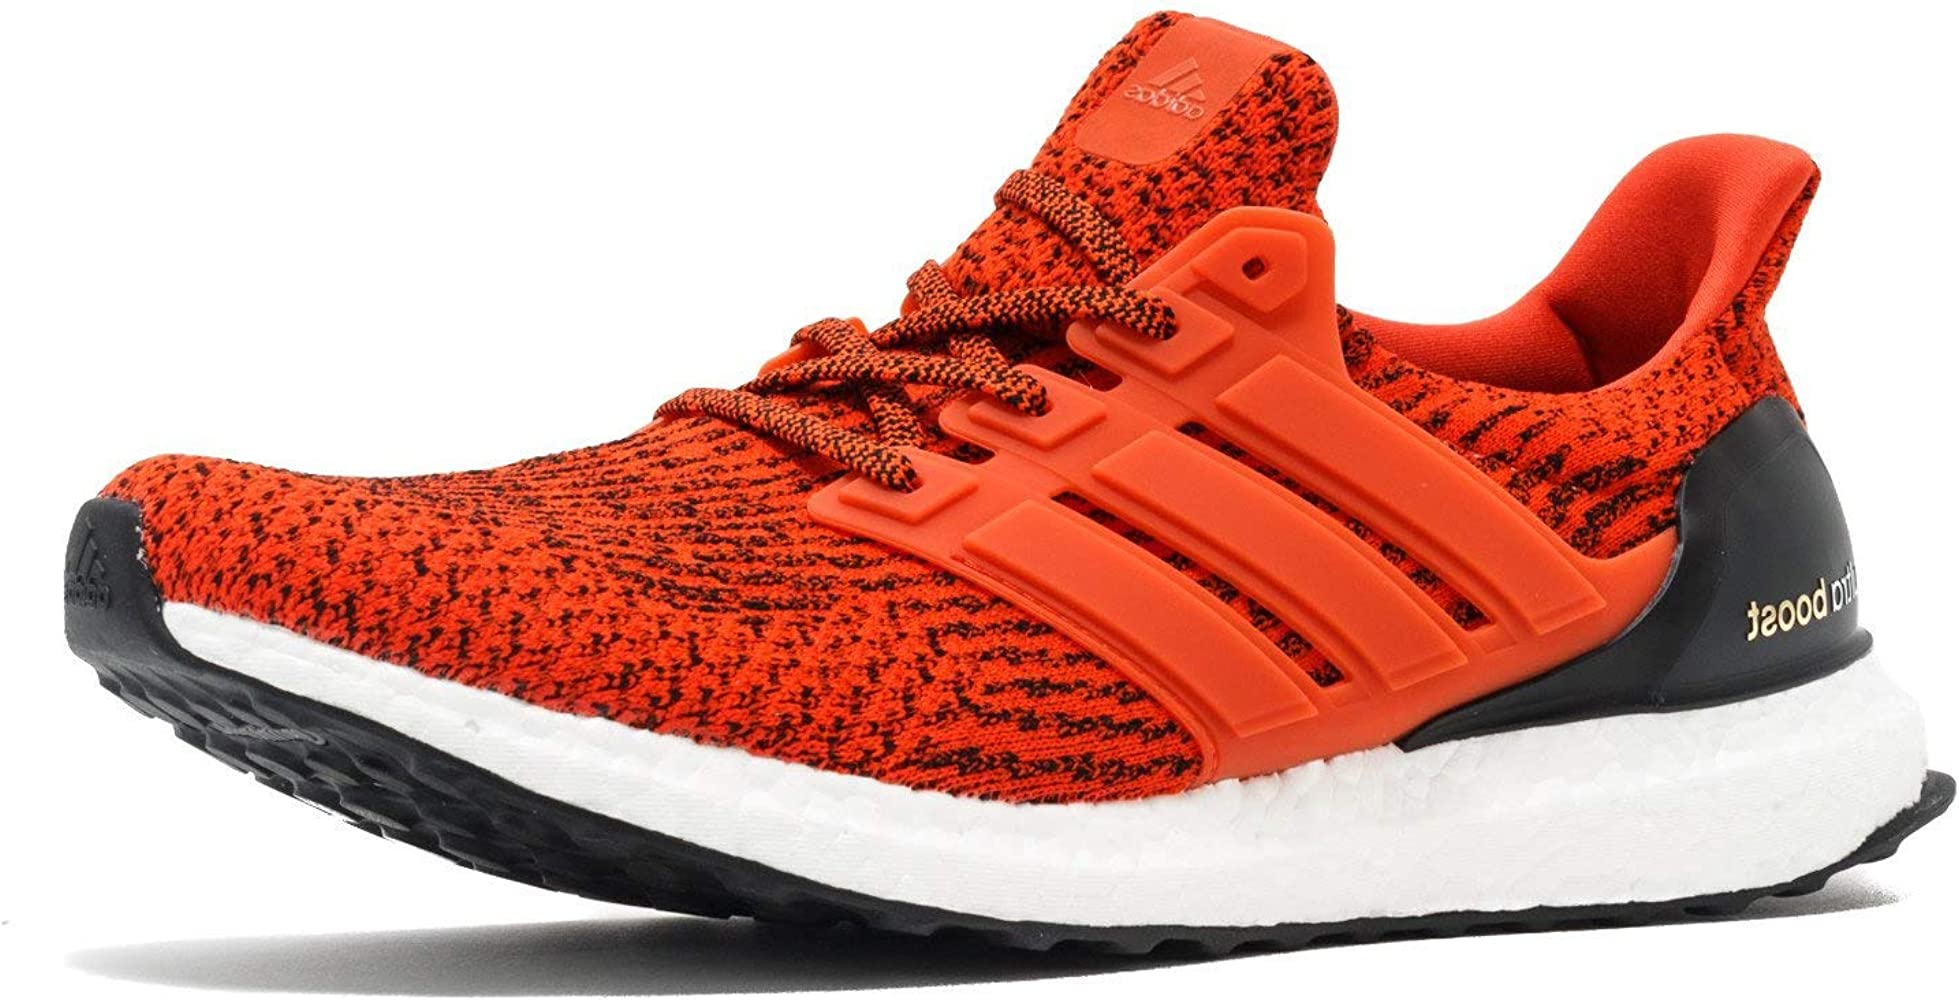 66bfe4badfc3d SS17 Mens Ultraboost Running Shoes - Energy - Neutral - Energy Red/Black -  UK 8